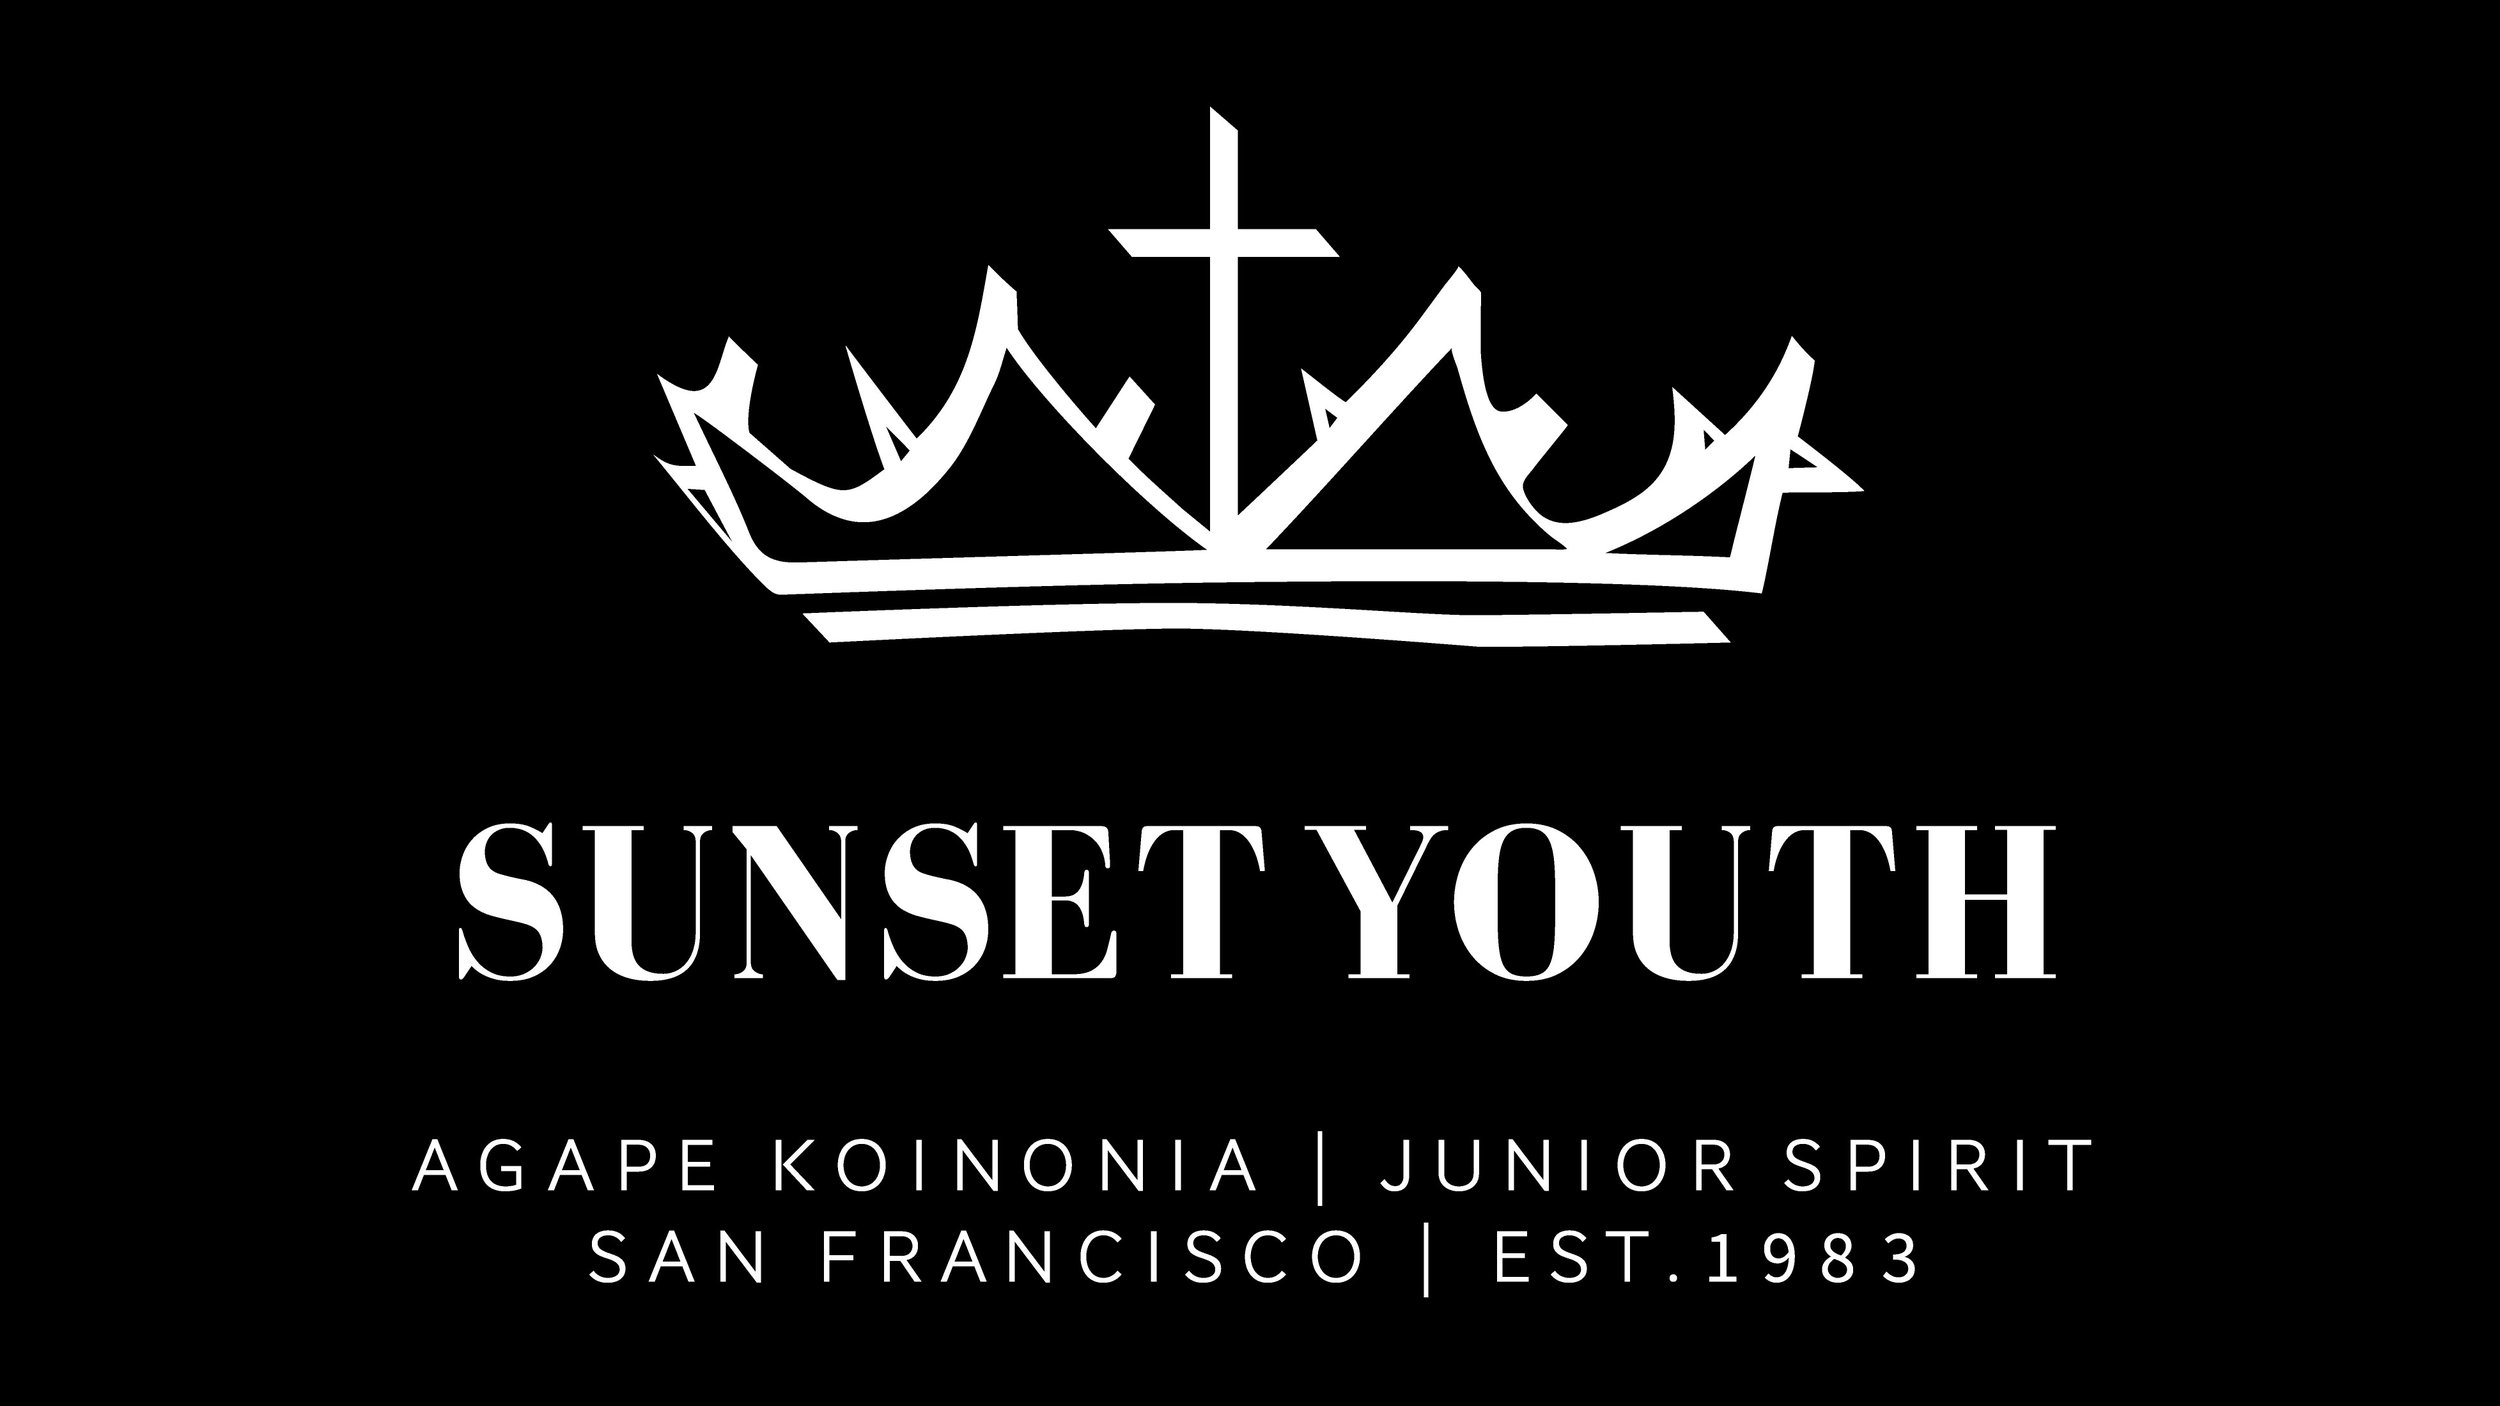 Sunset-Youth.jpg